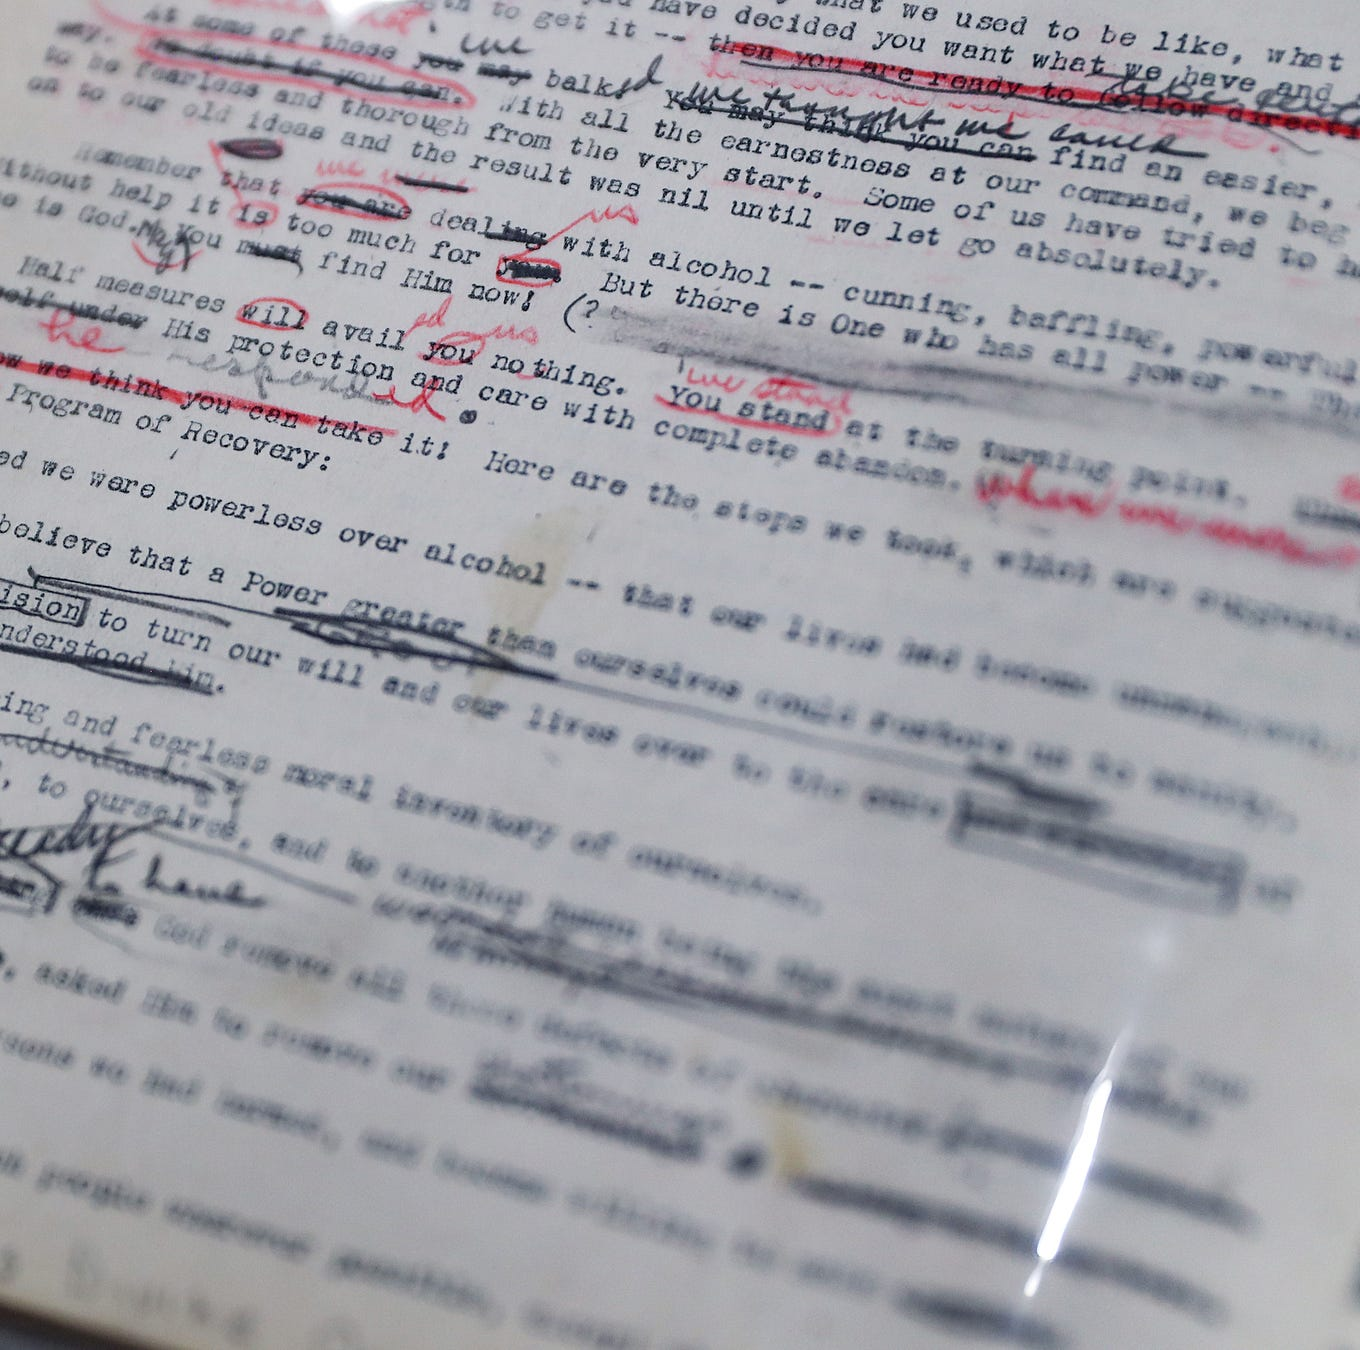 Why Jim Irsay spent $2.4 million on a manuscript with pencil scrawls in the margins